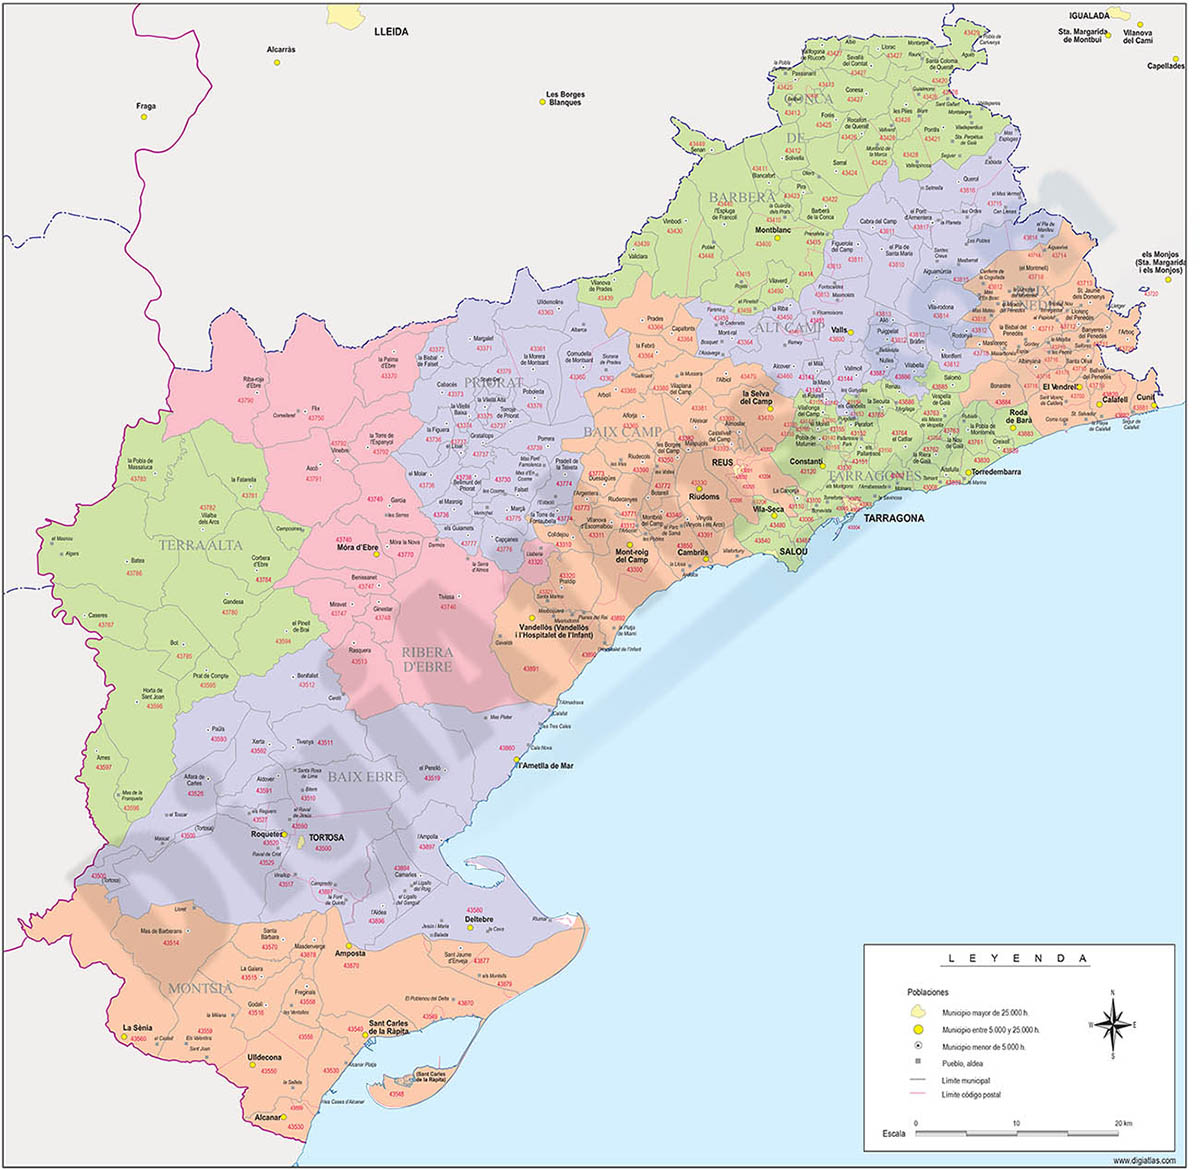 Tarragona - province map with municipalities, comarcas and postal codes